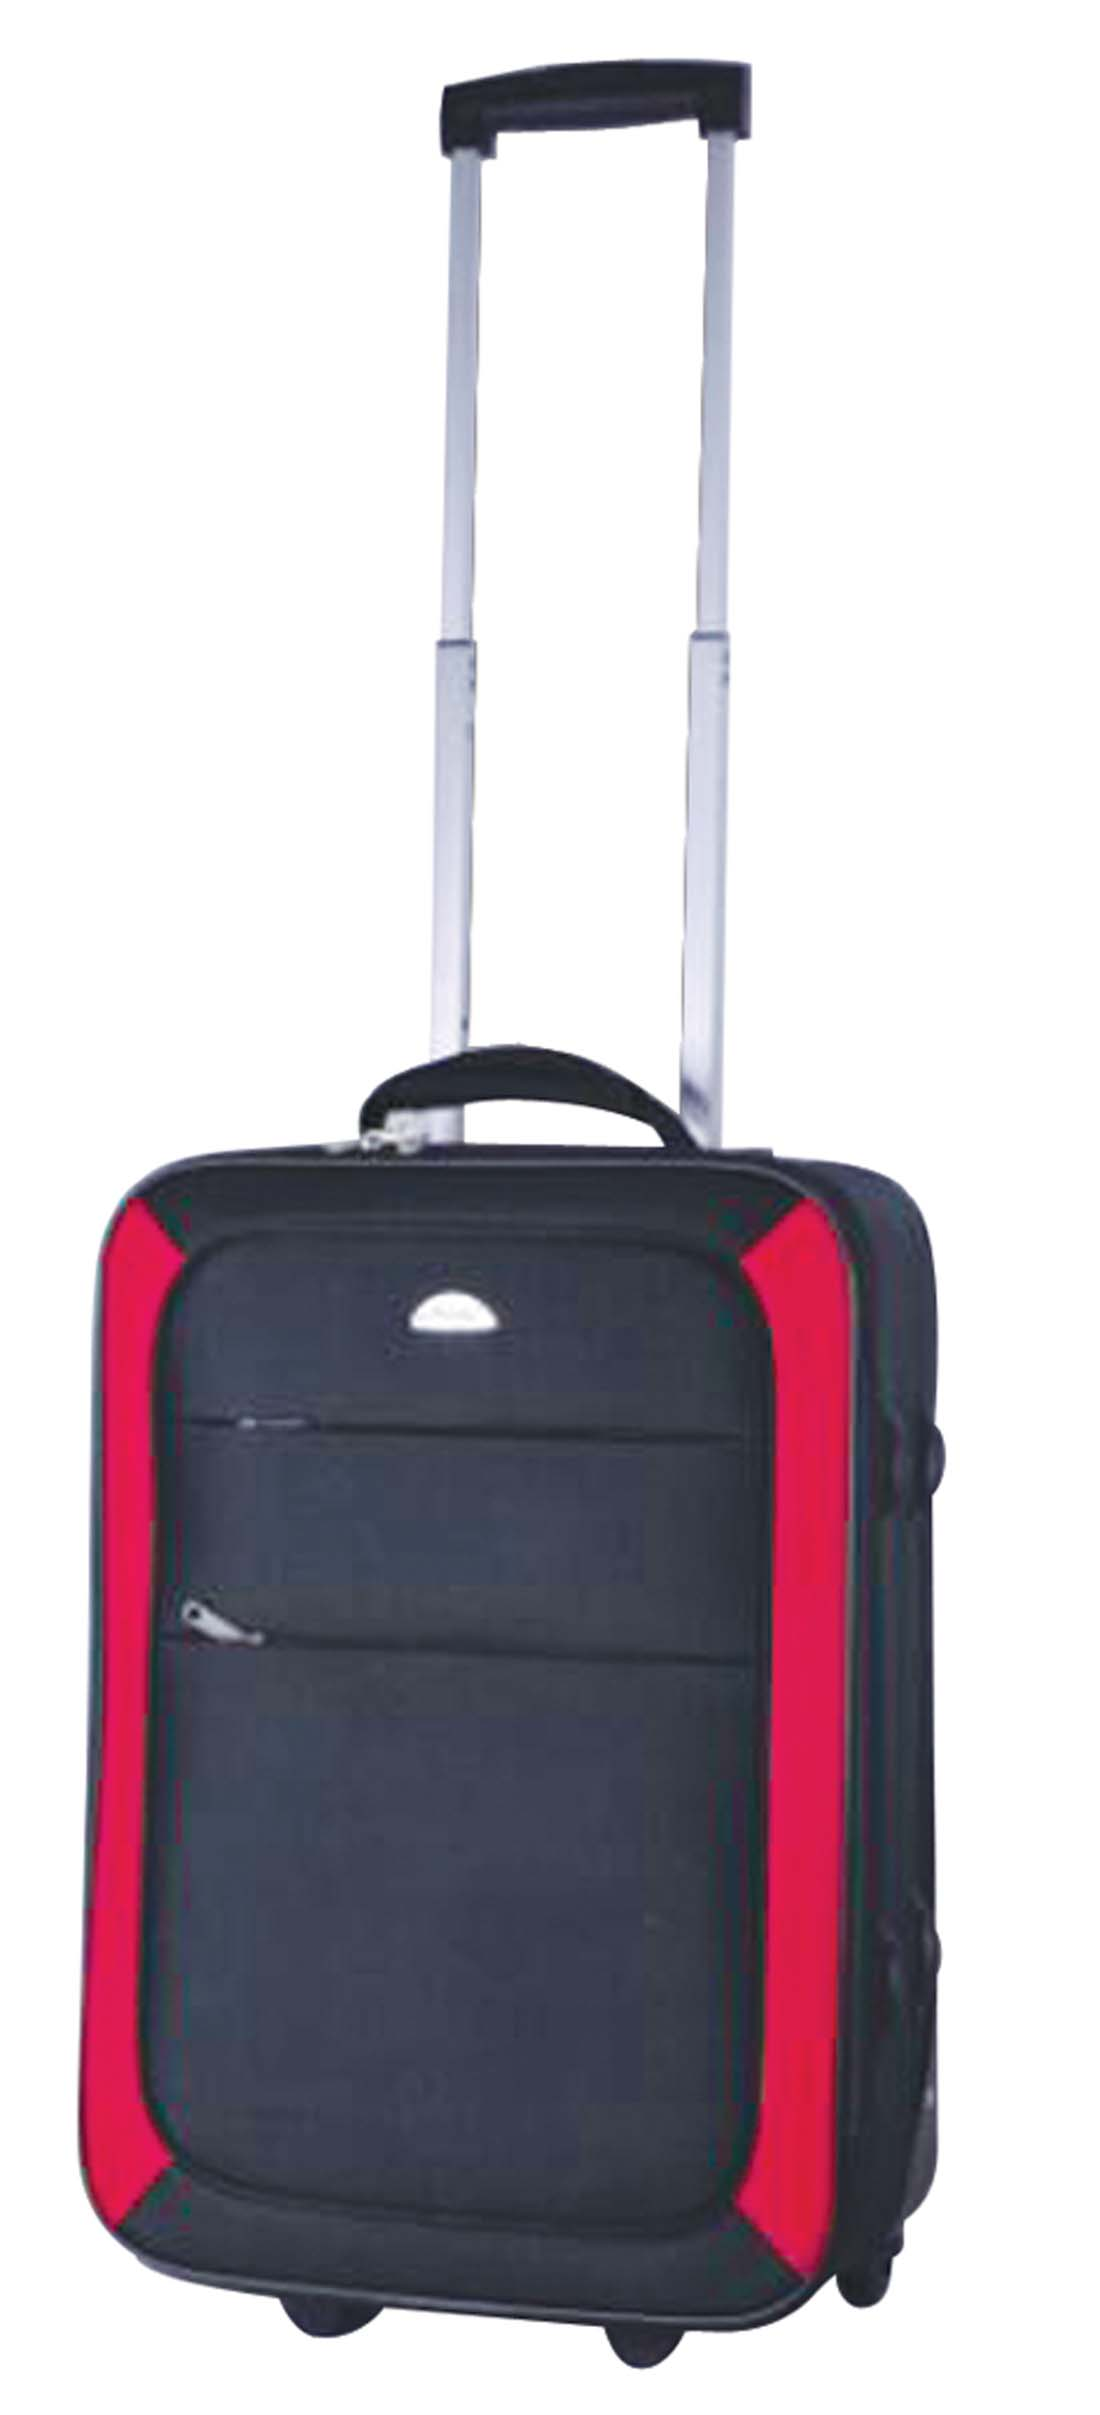 View SOFT LUGGAGE 20 INCH 2 WHEELS BLACK WITH RED